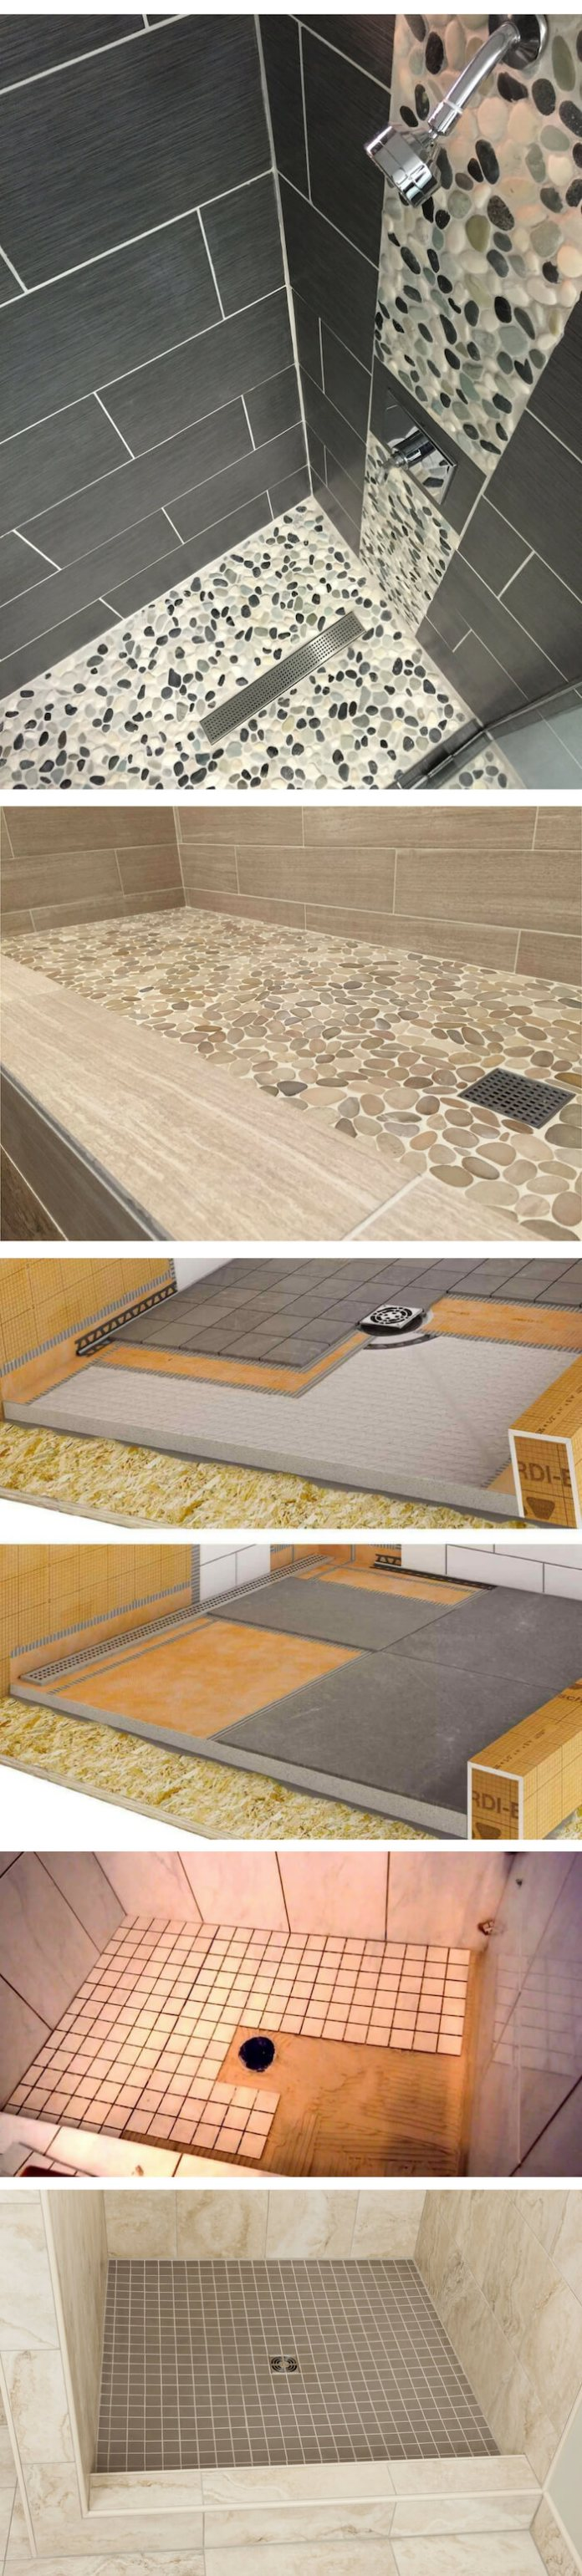 Blogule bathroom floor tile ideas